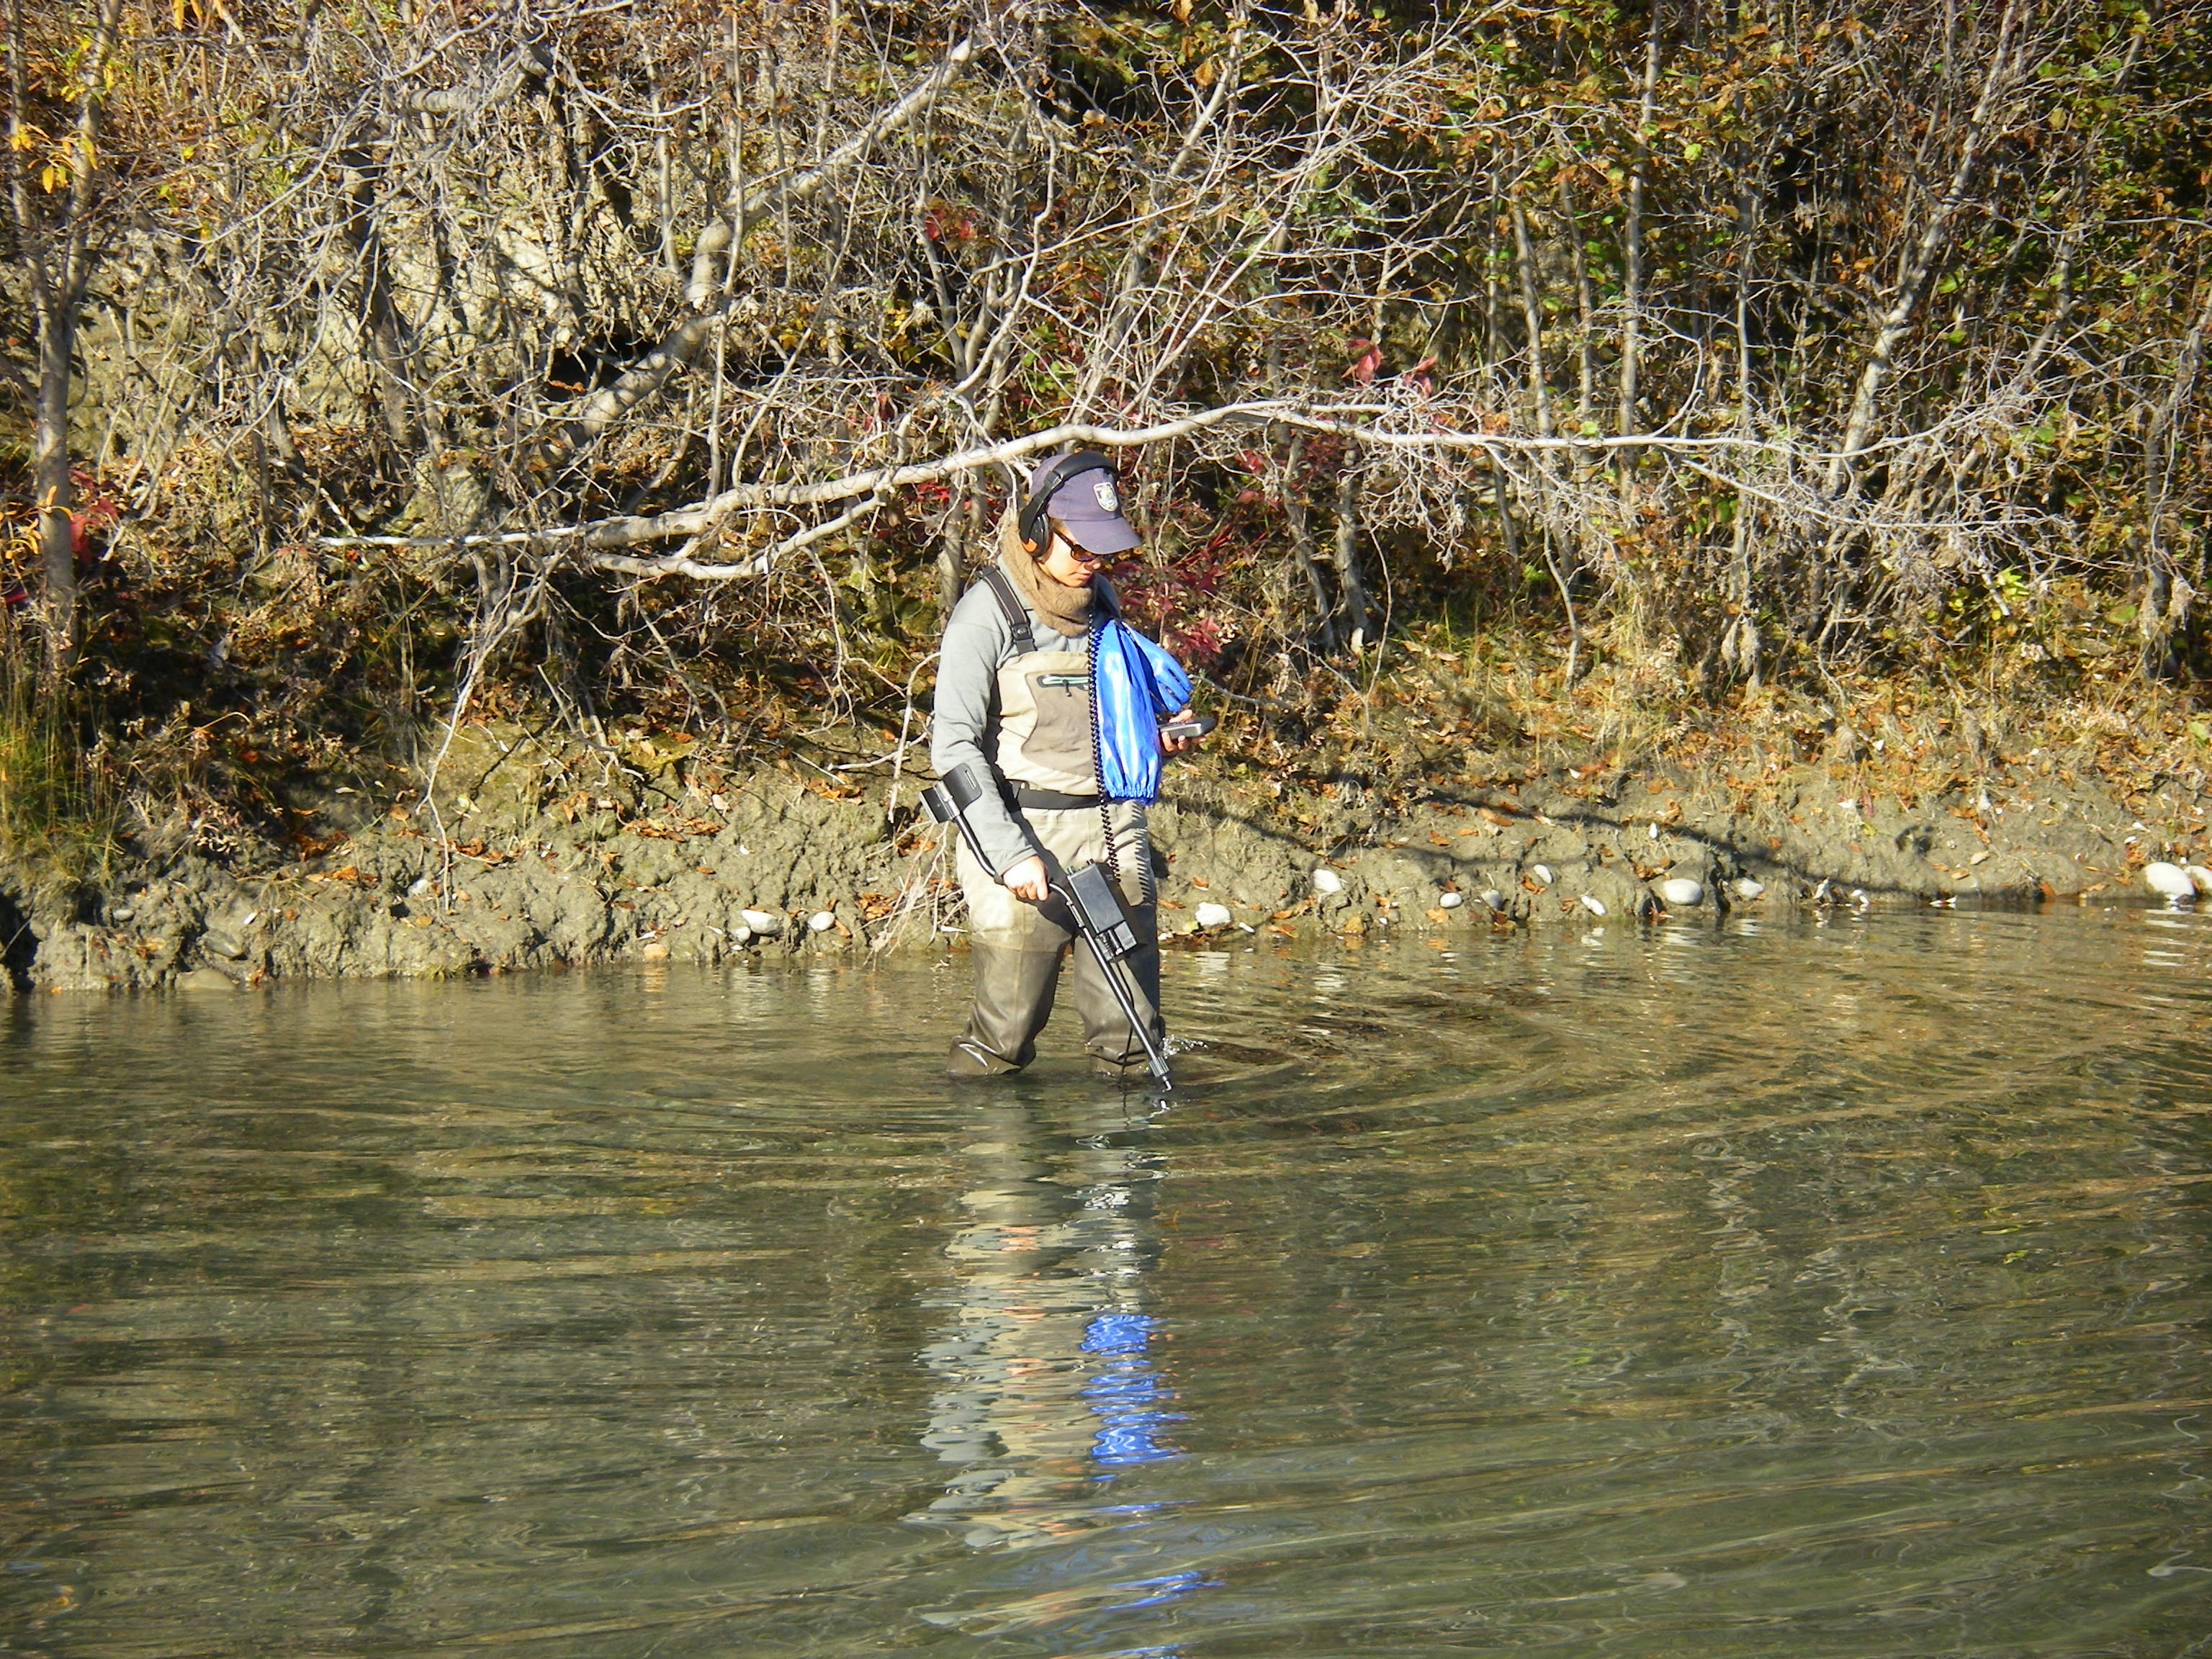 Chelsea Clawson uses an underwater metal detector to locate stream temperature loggers in the T'eedriinjik River, Alaska